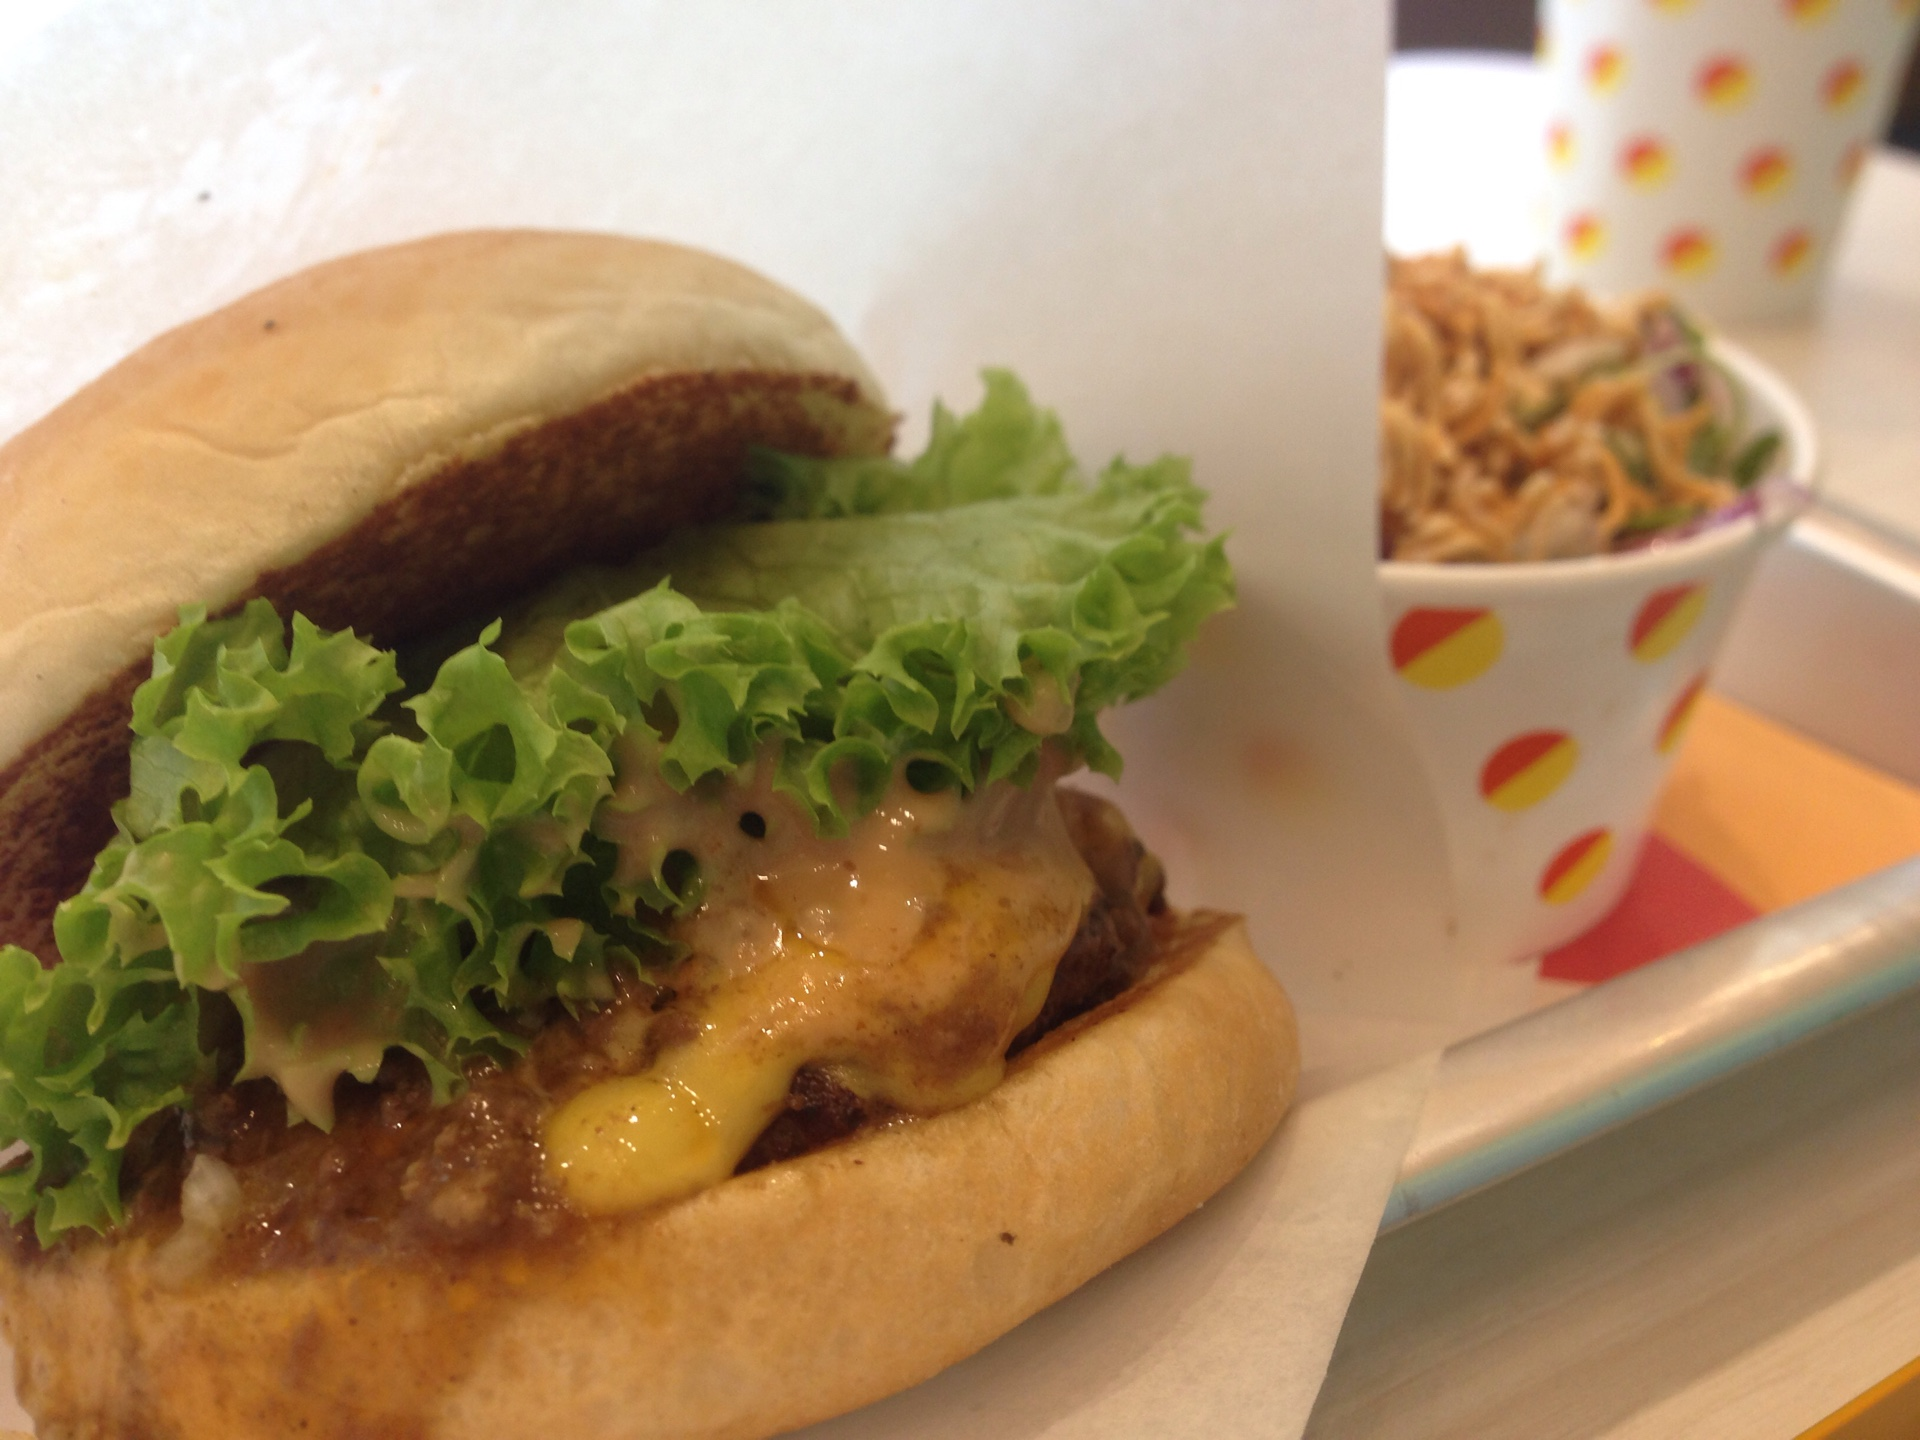 Curry Cheese Burger